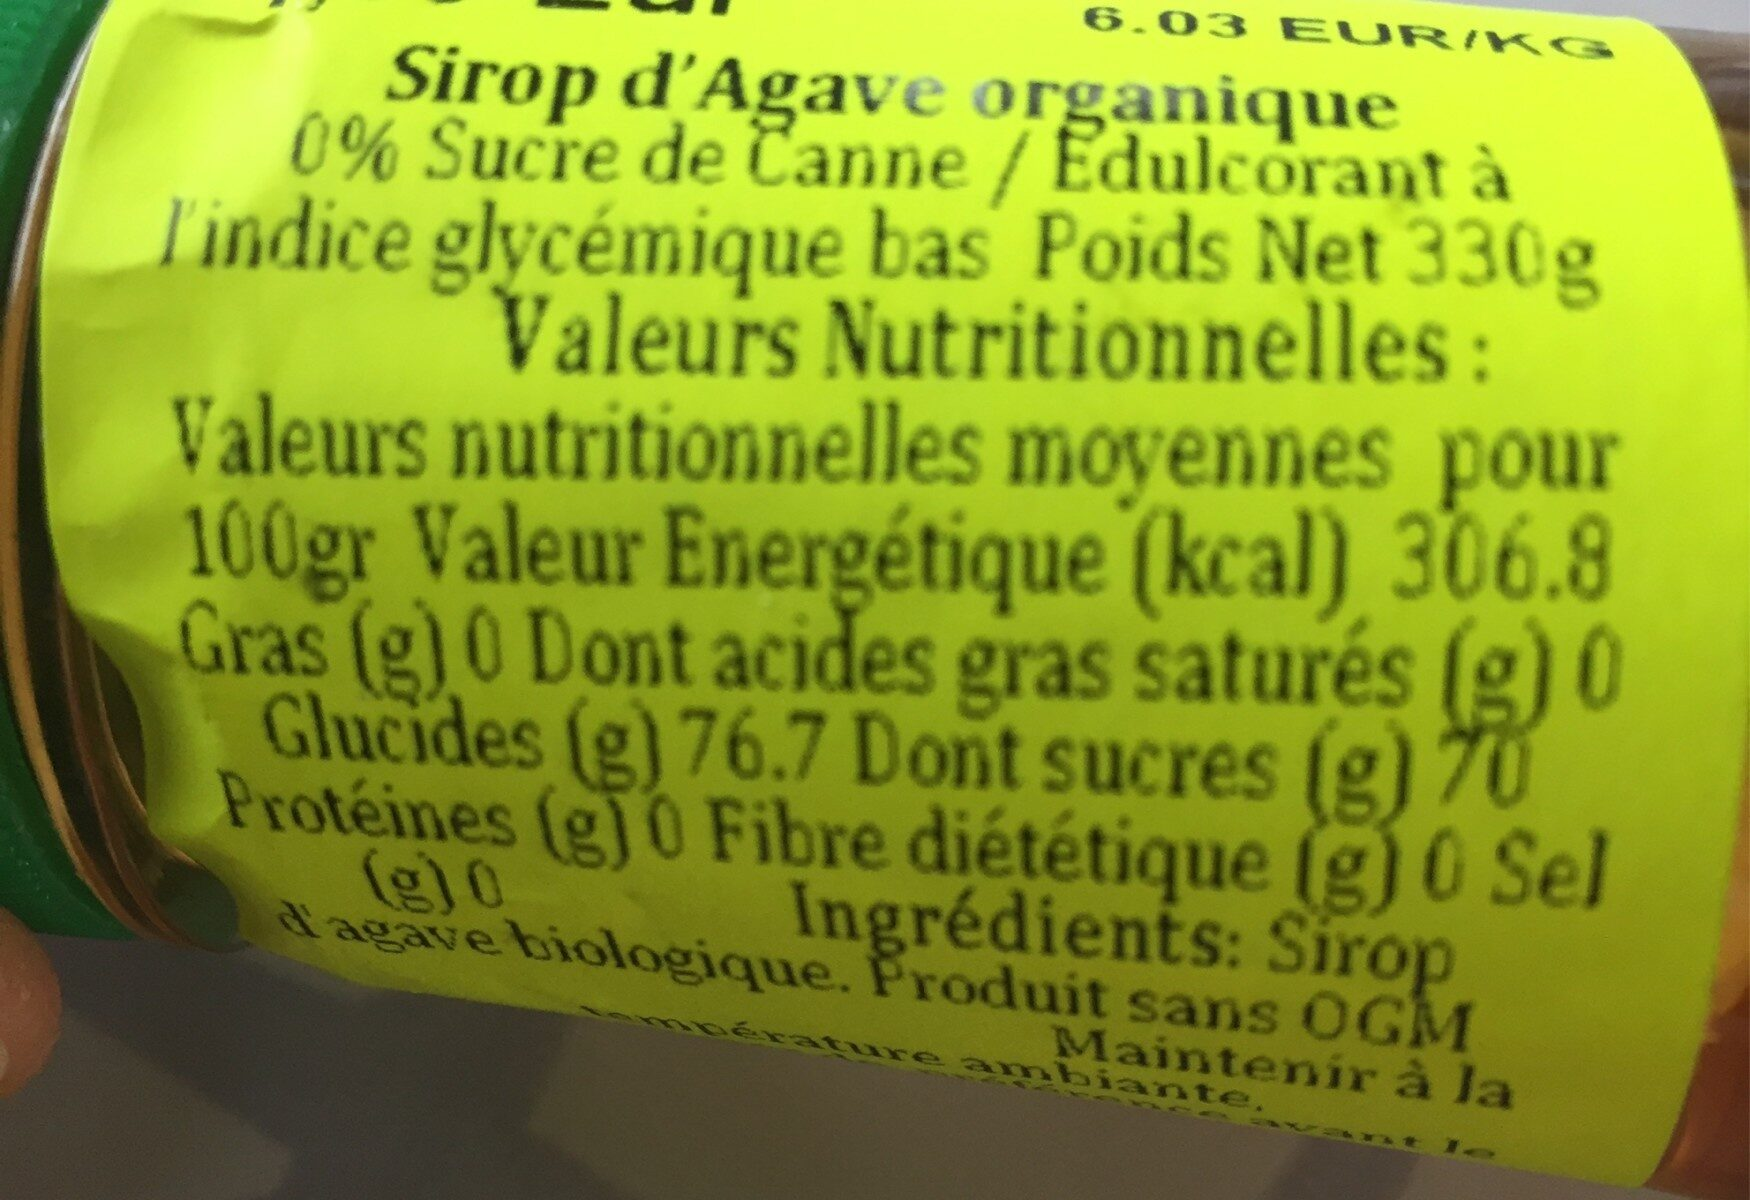 Sirop d'Agave organique - Ingredients - fr